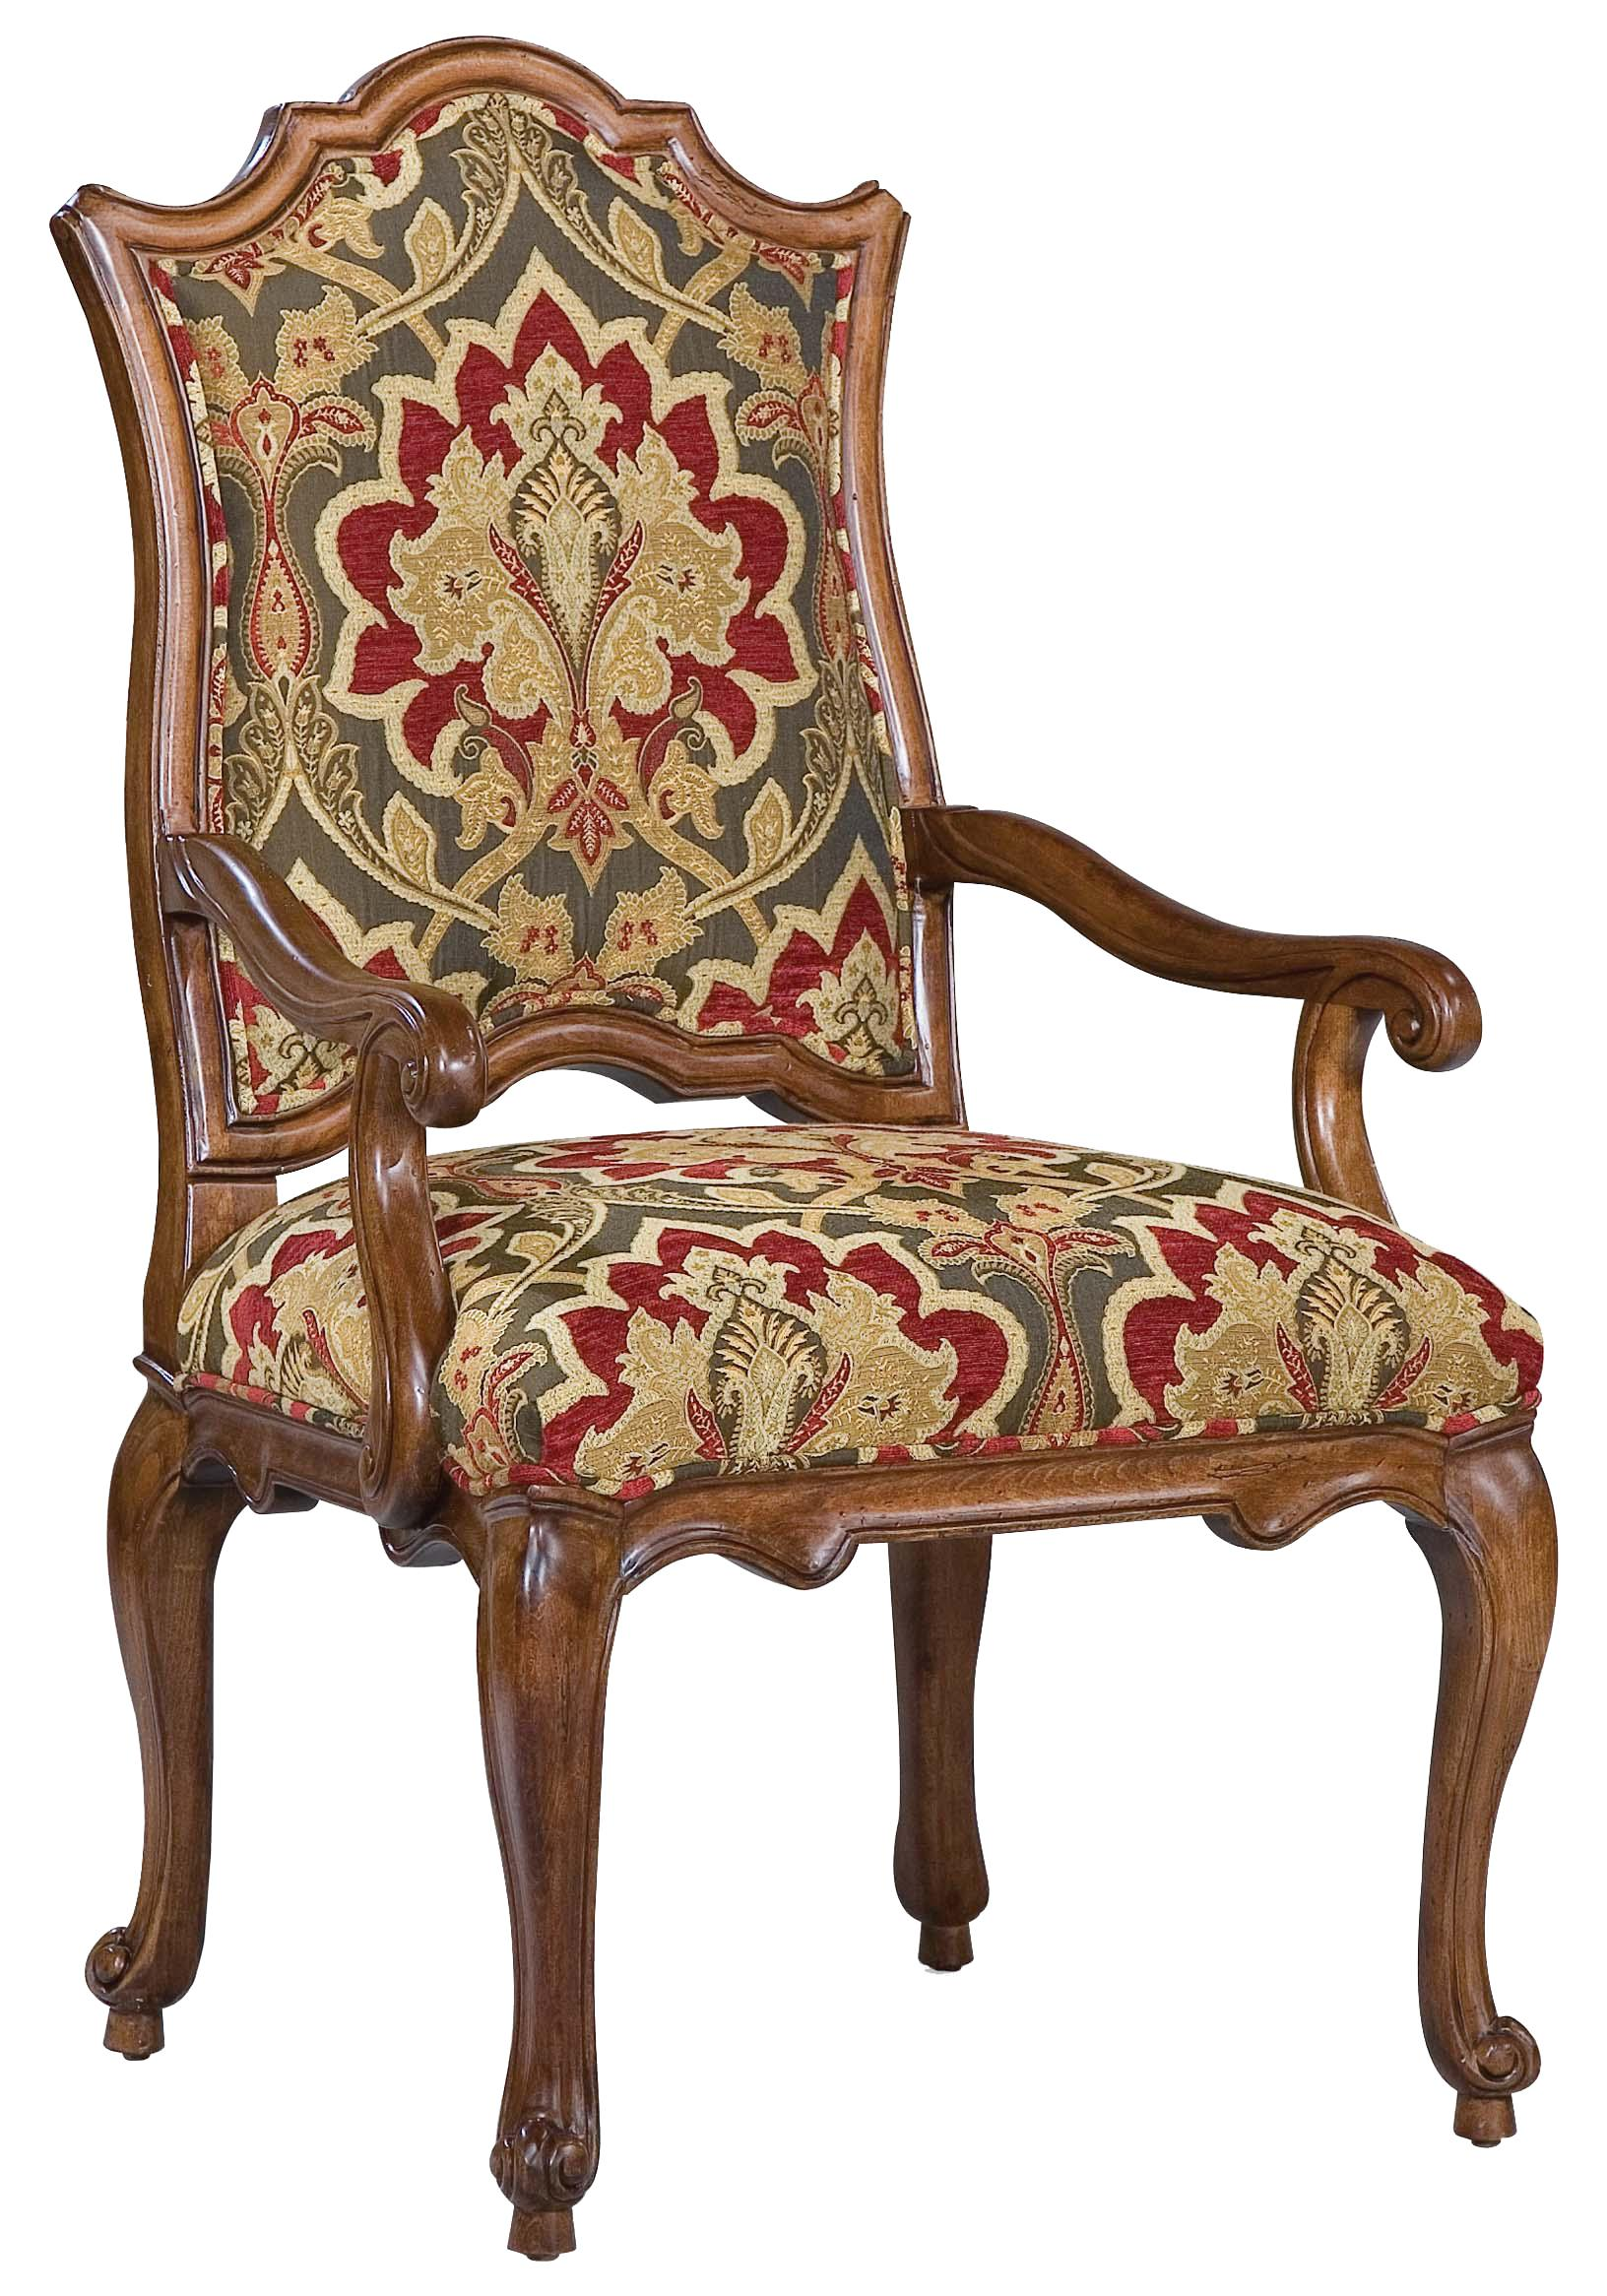 Fairfield Chairs Victorian Accent Arm Chair - Item Number: 5473-04